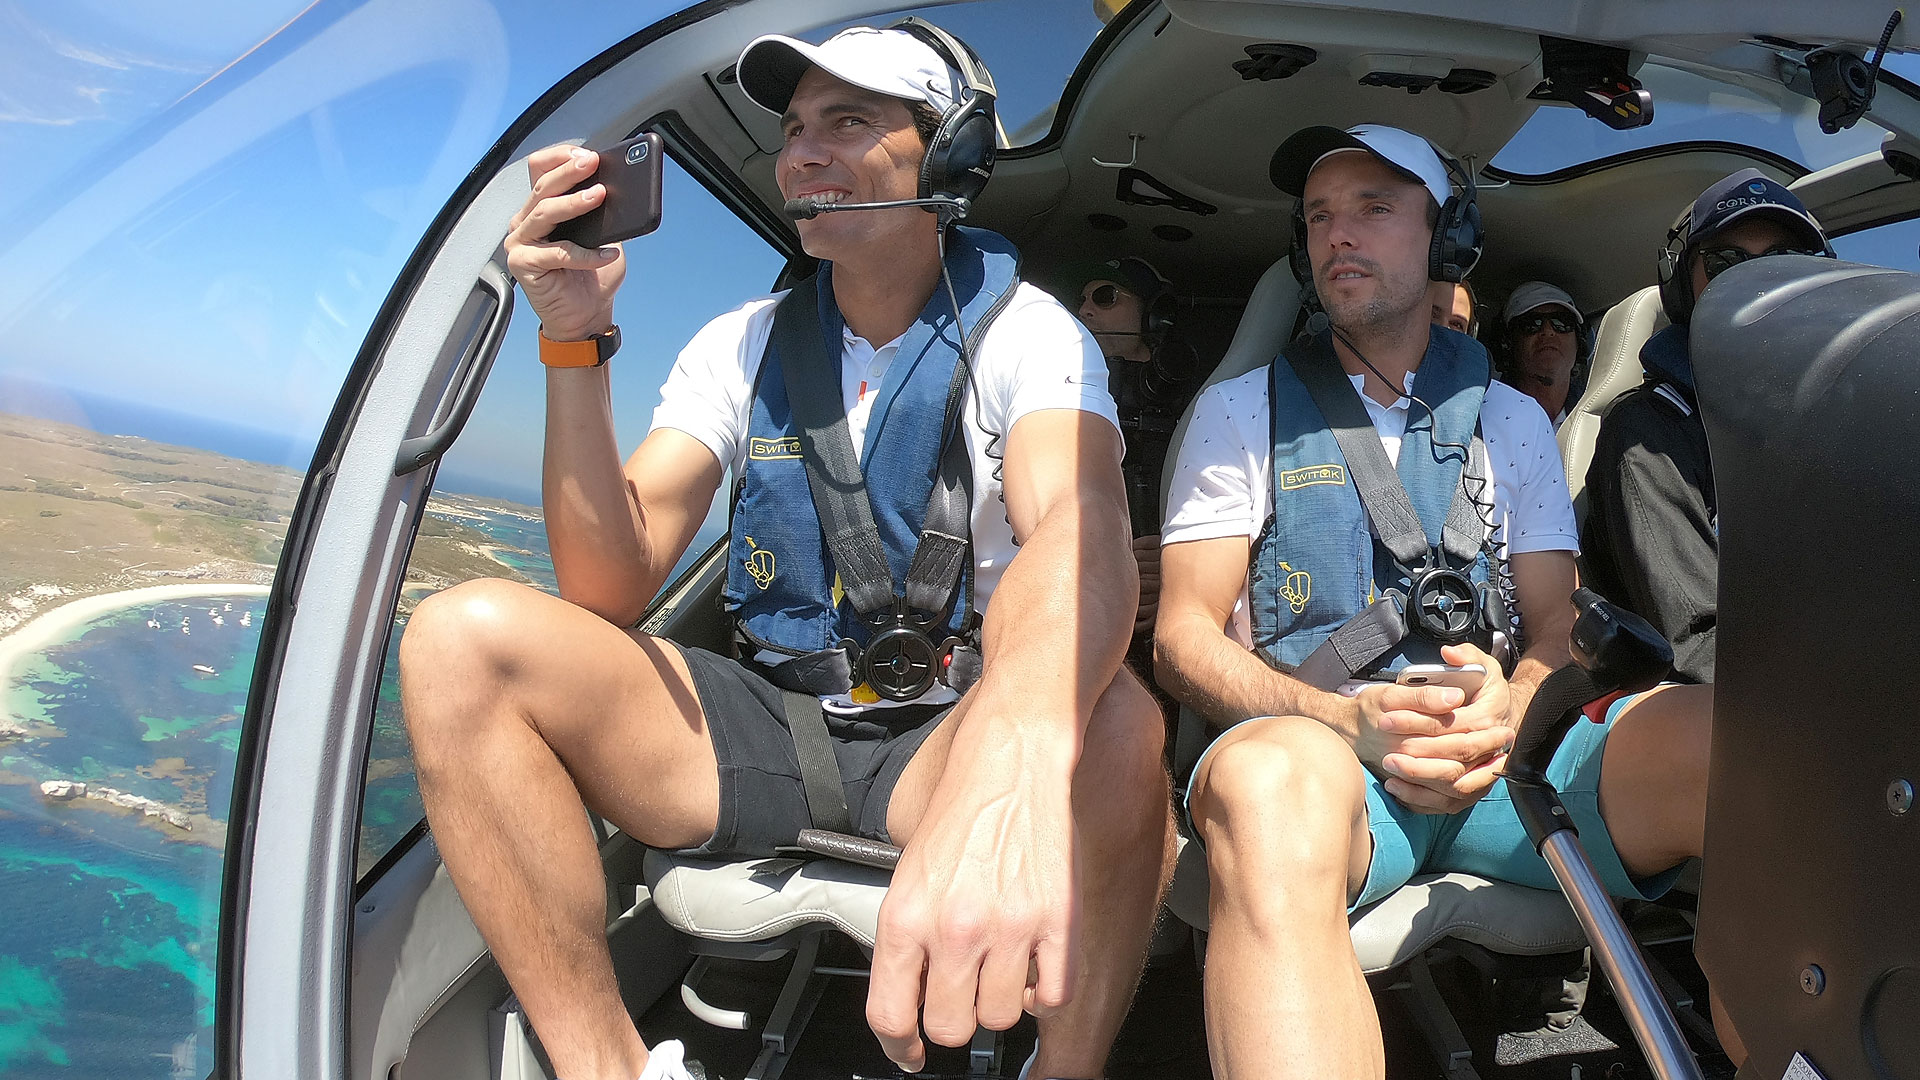 Nadal, Bautista Agut en route to Rottnest Island